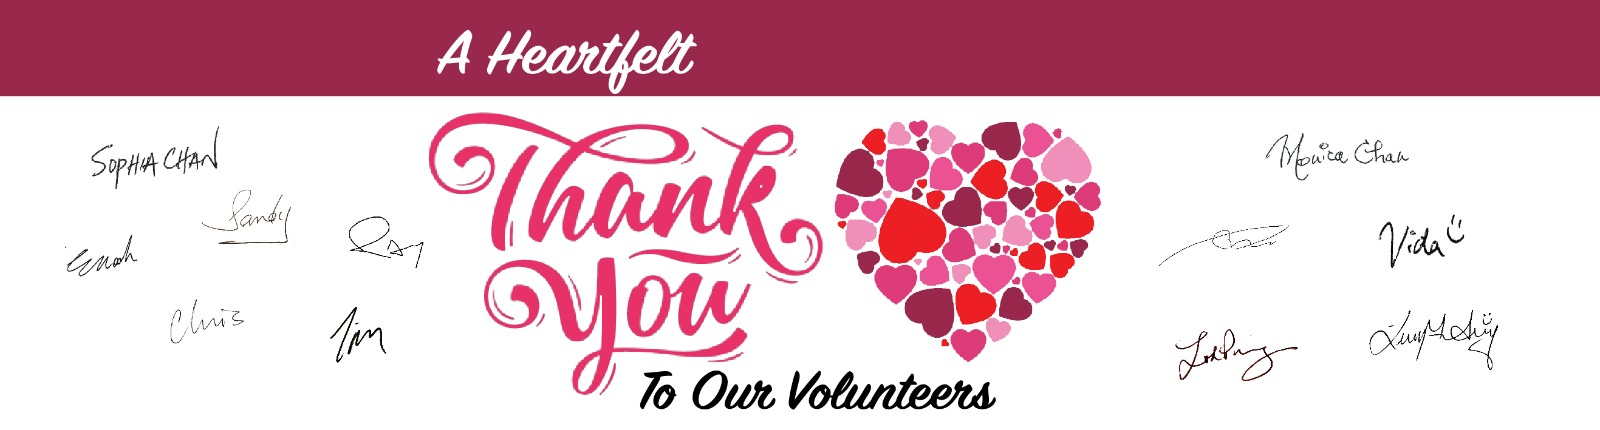 A Heartfelt Thank You to our Volunteers Banner